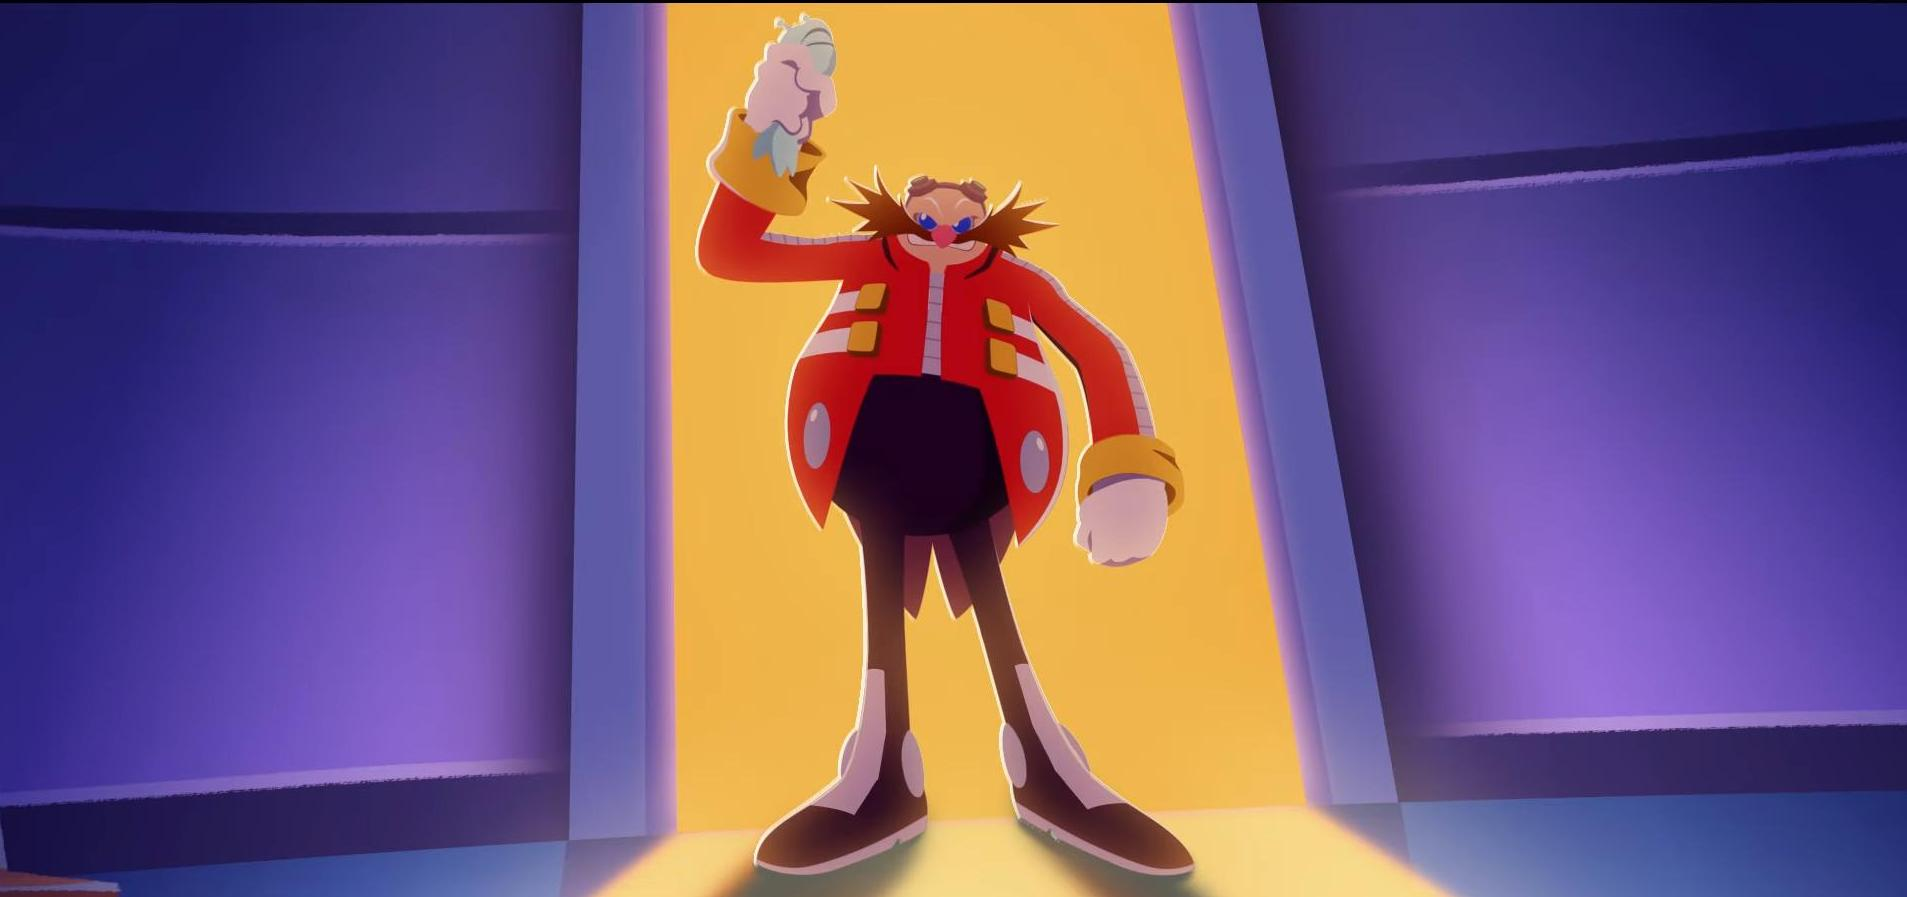 Sonic Colors - Dr. Eggman stands menacingly in a brightly lit doorway in Sonic Colors: Rise of the Wisps animation